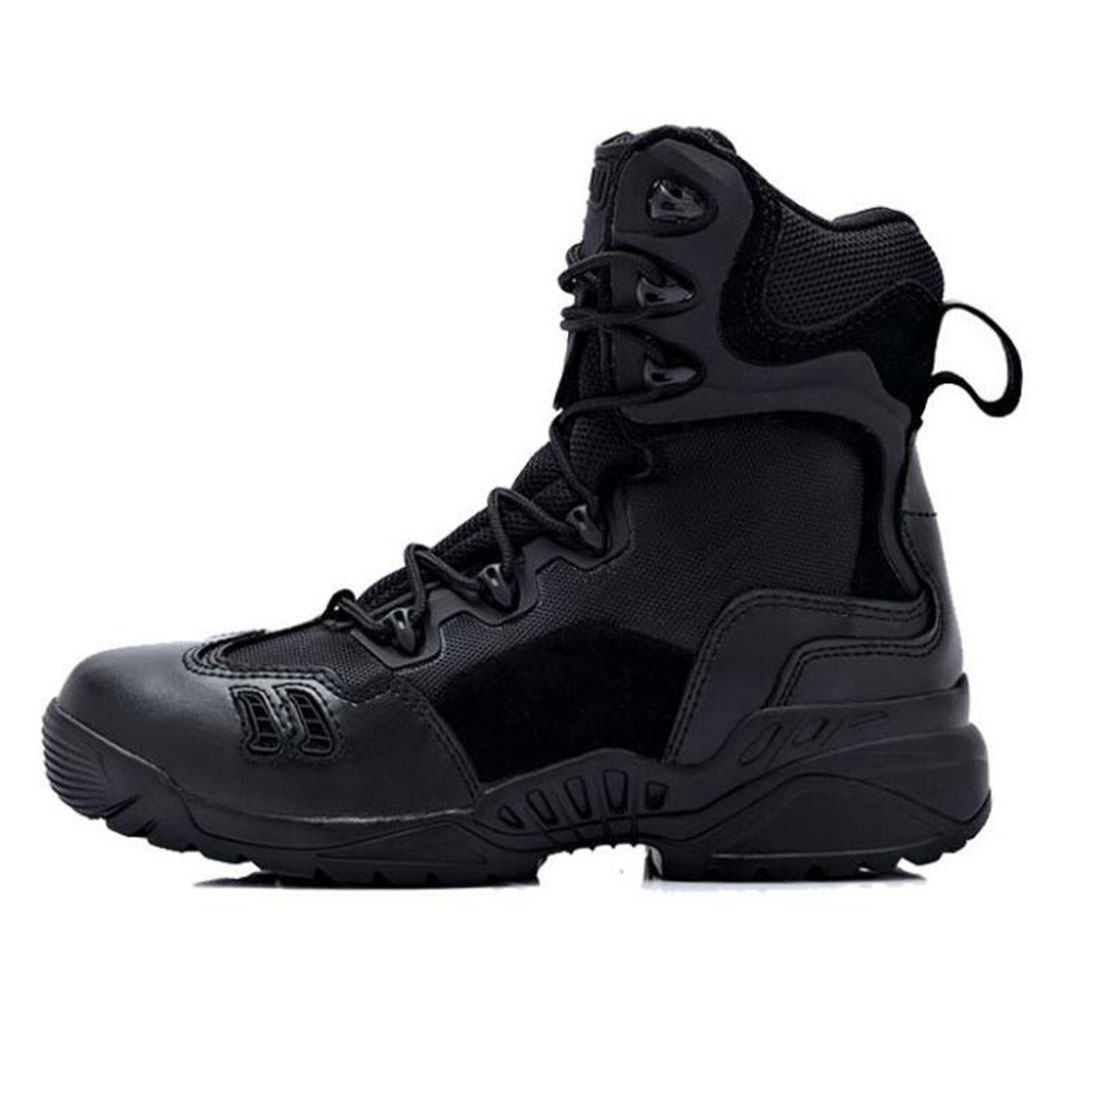 Military Tactical Combat Outdoor Sport Army Men Boots Desert Botas Hiking Autumn Winter Shoes Travel Leather High Boots Male